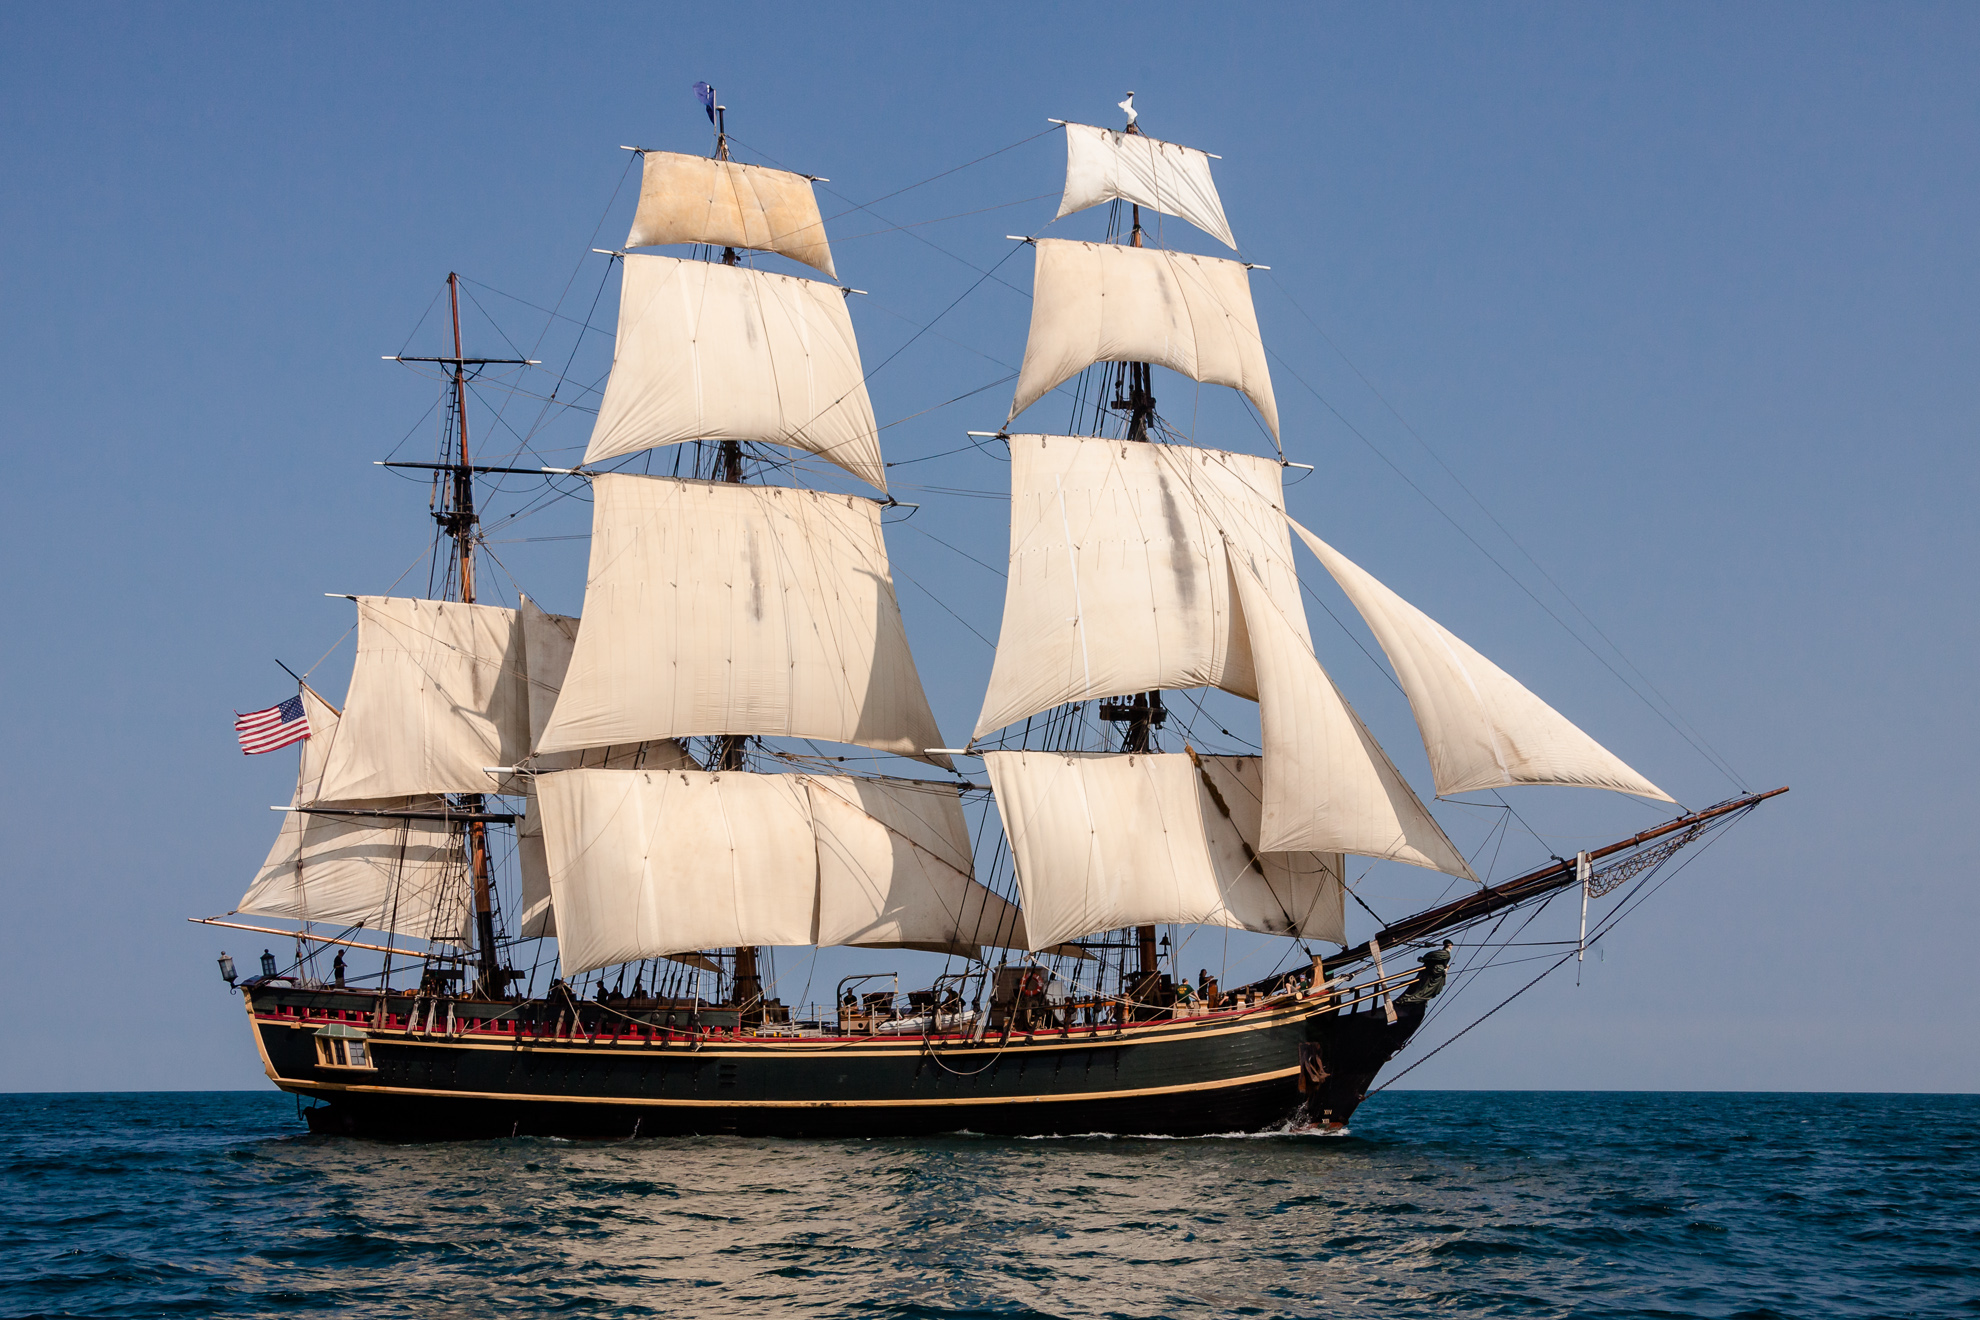 FileHMS BOUNTY II With Full Sailsjpg Wikimedia Commons